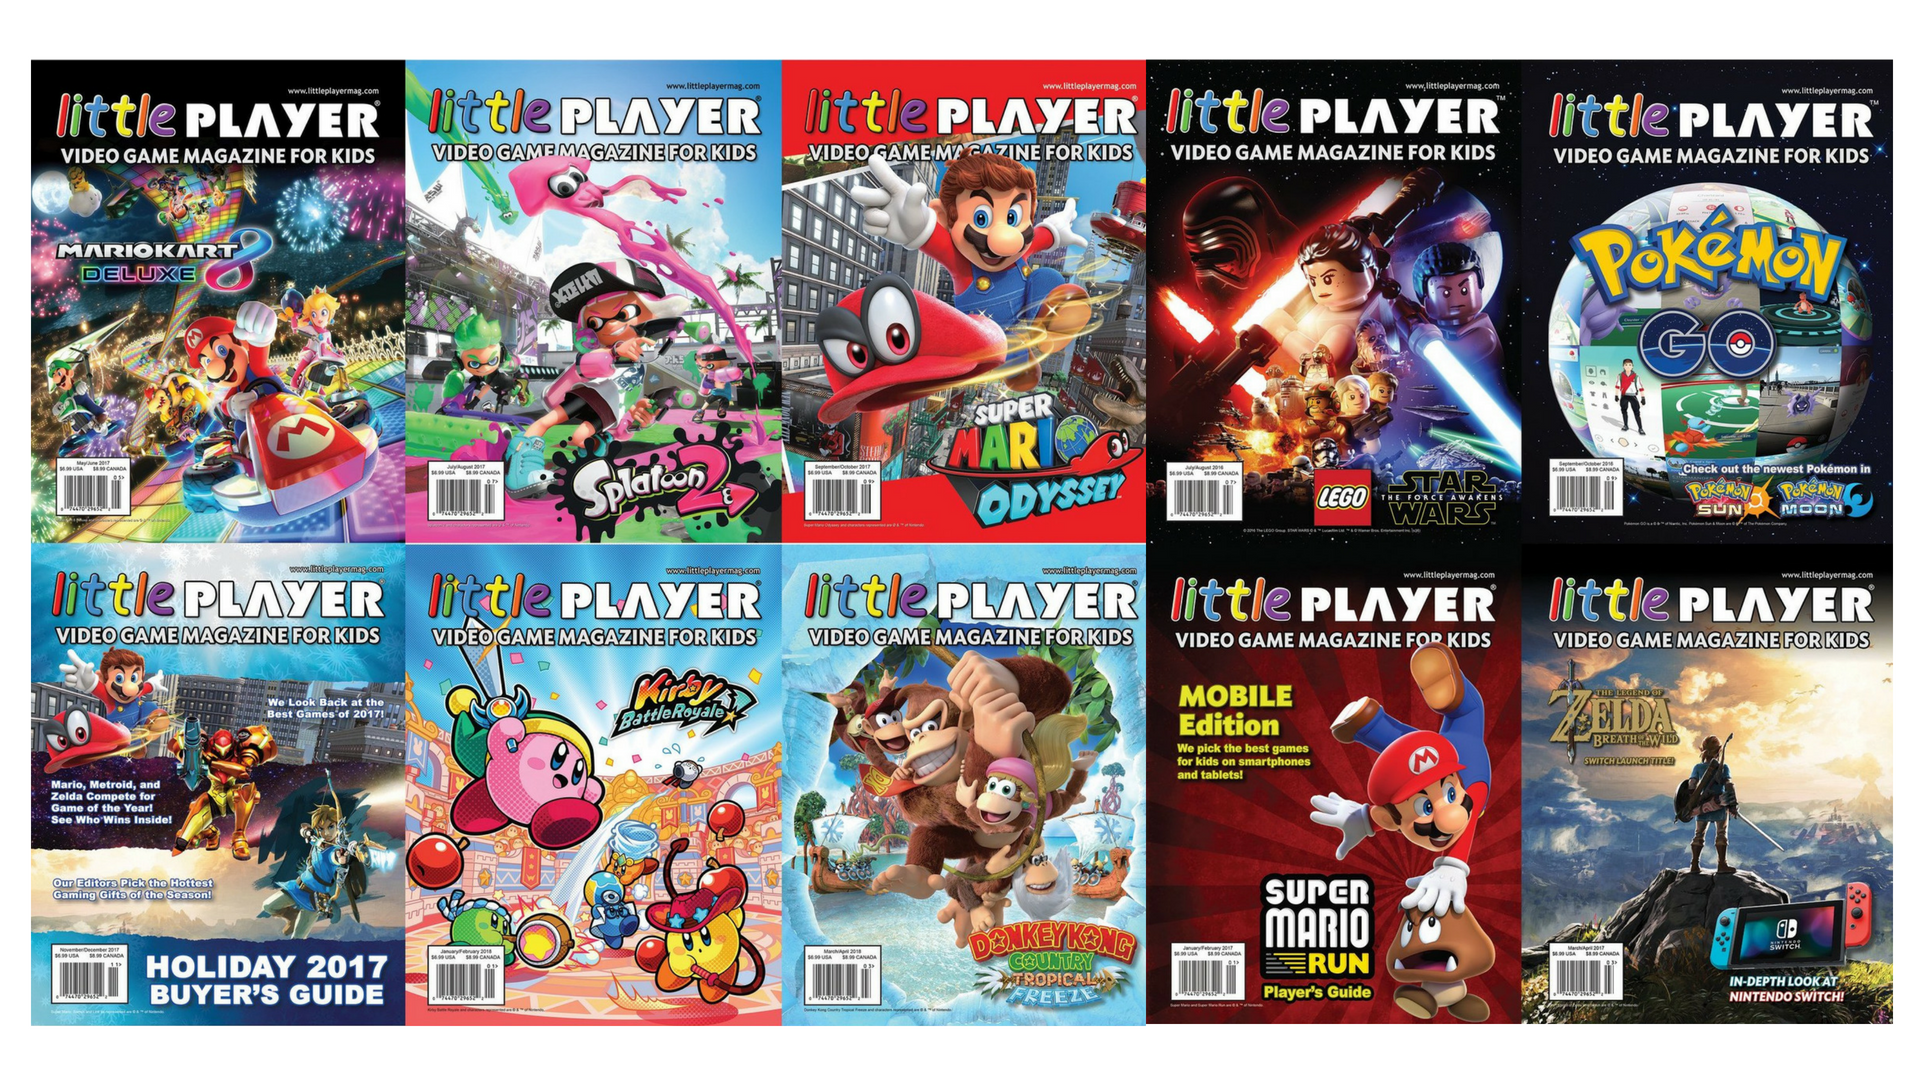 Get Your Gamer Kid 12 Free Digital Issues Of Little Player Magazine